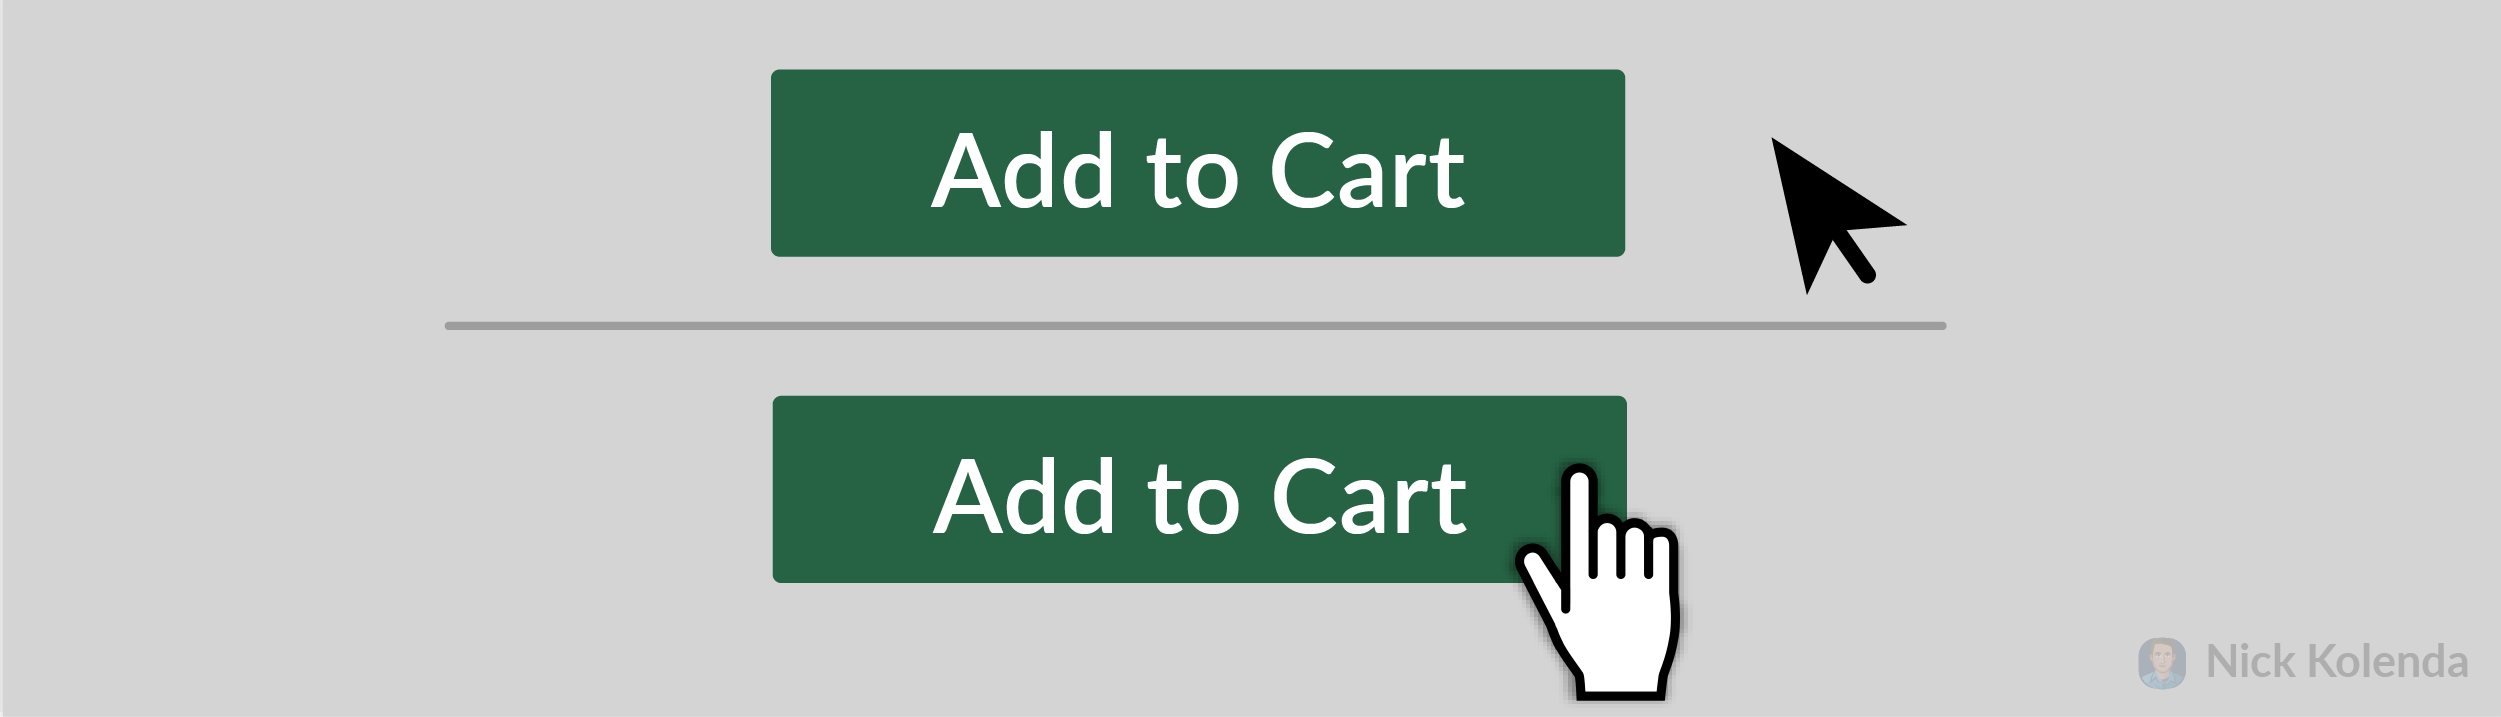 Cursor changing while hovering over button